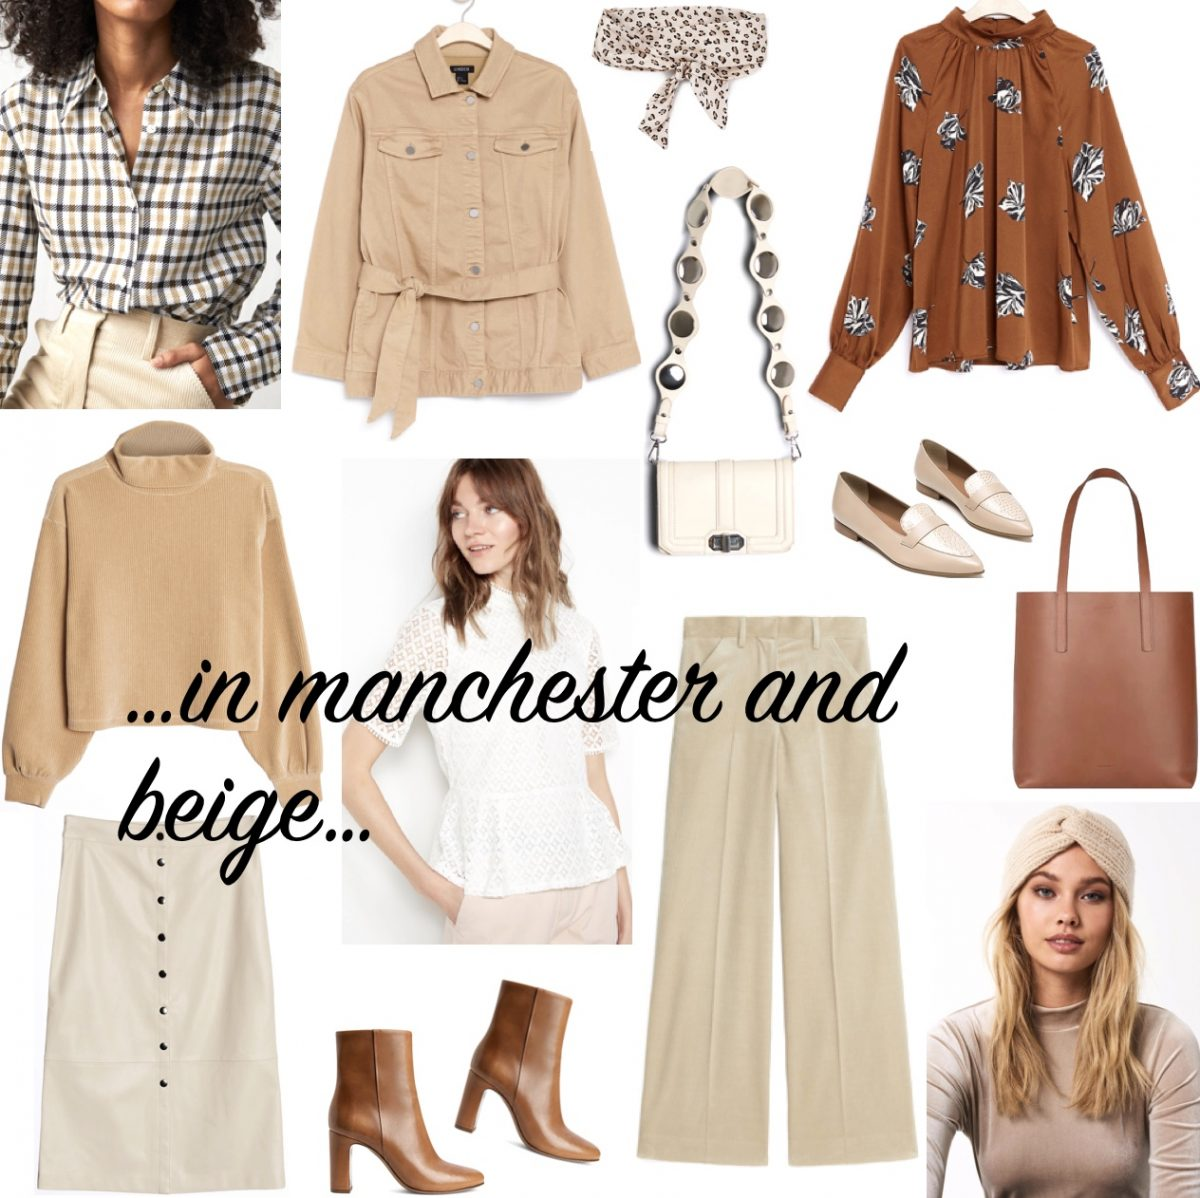 Monday Casual Outfit Inspo…